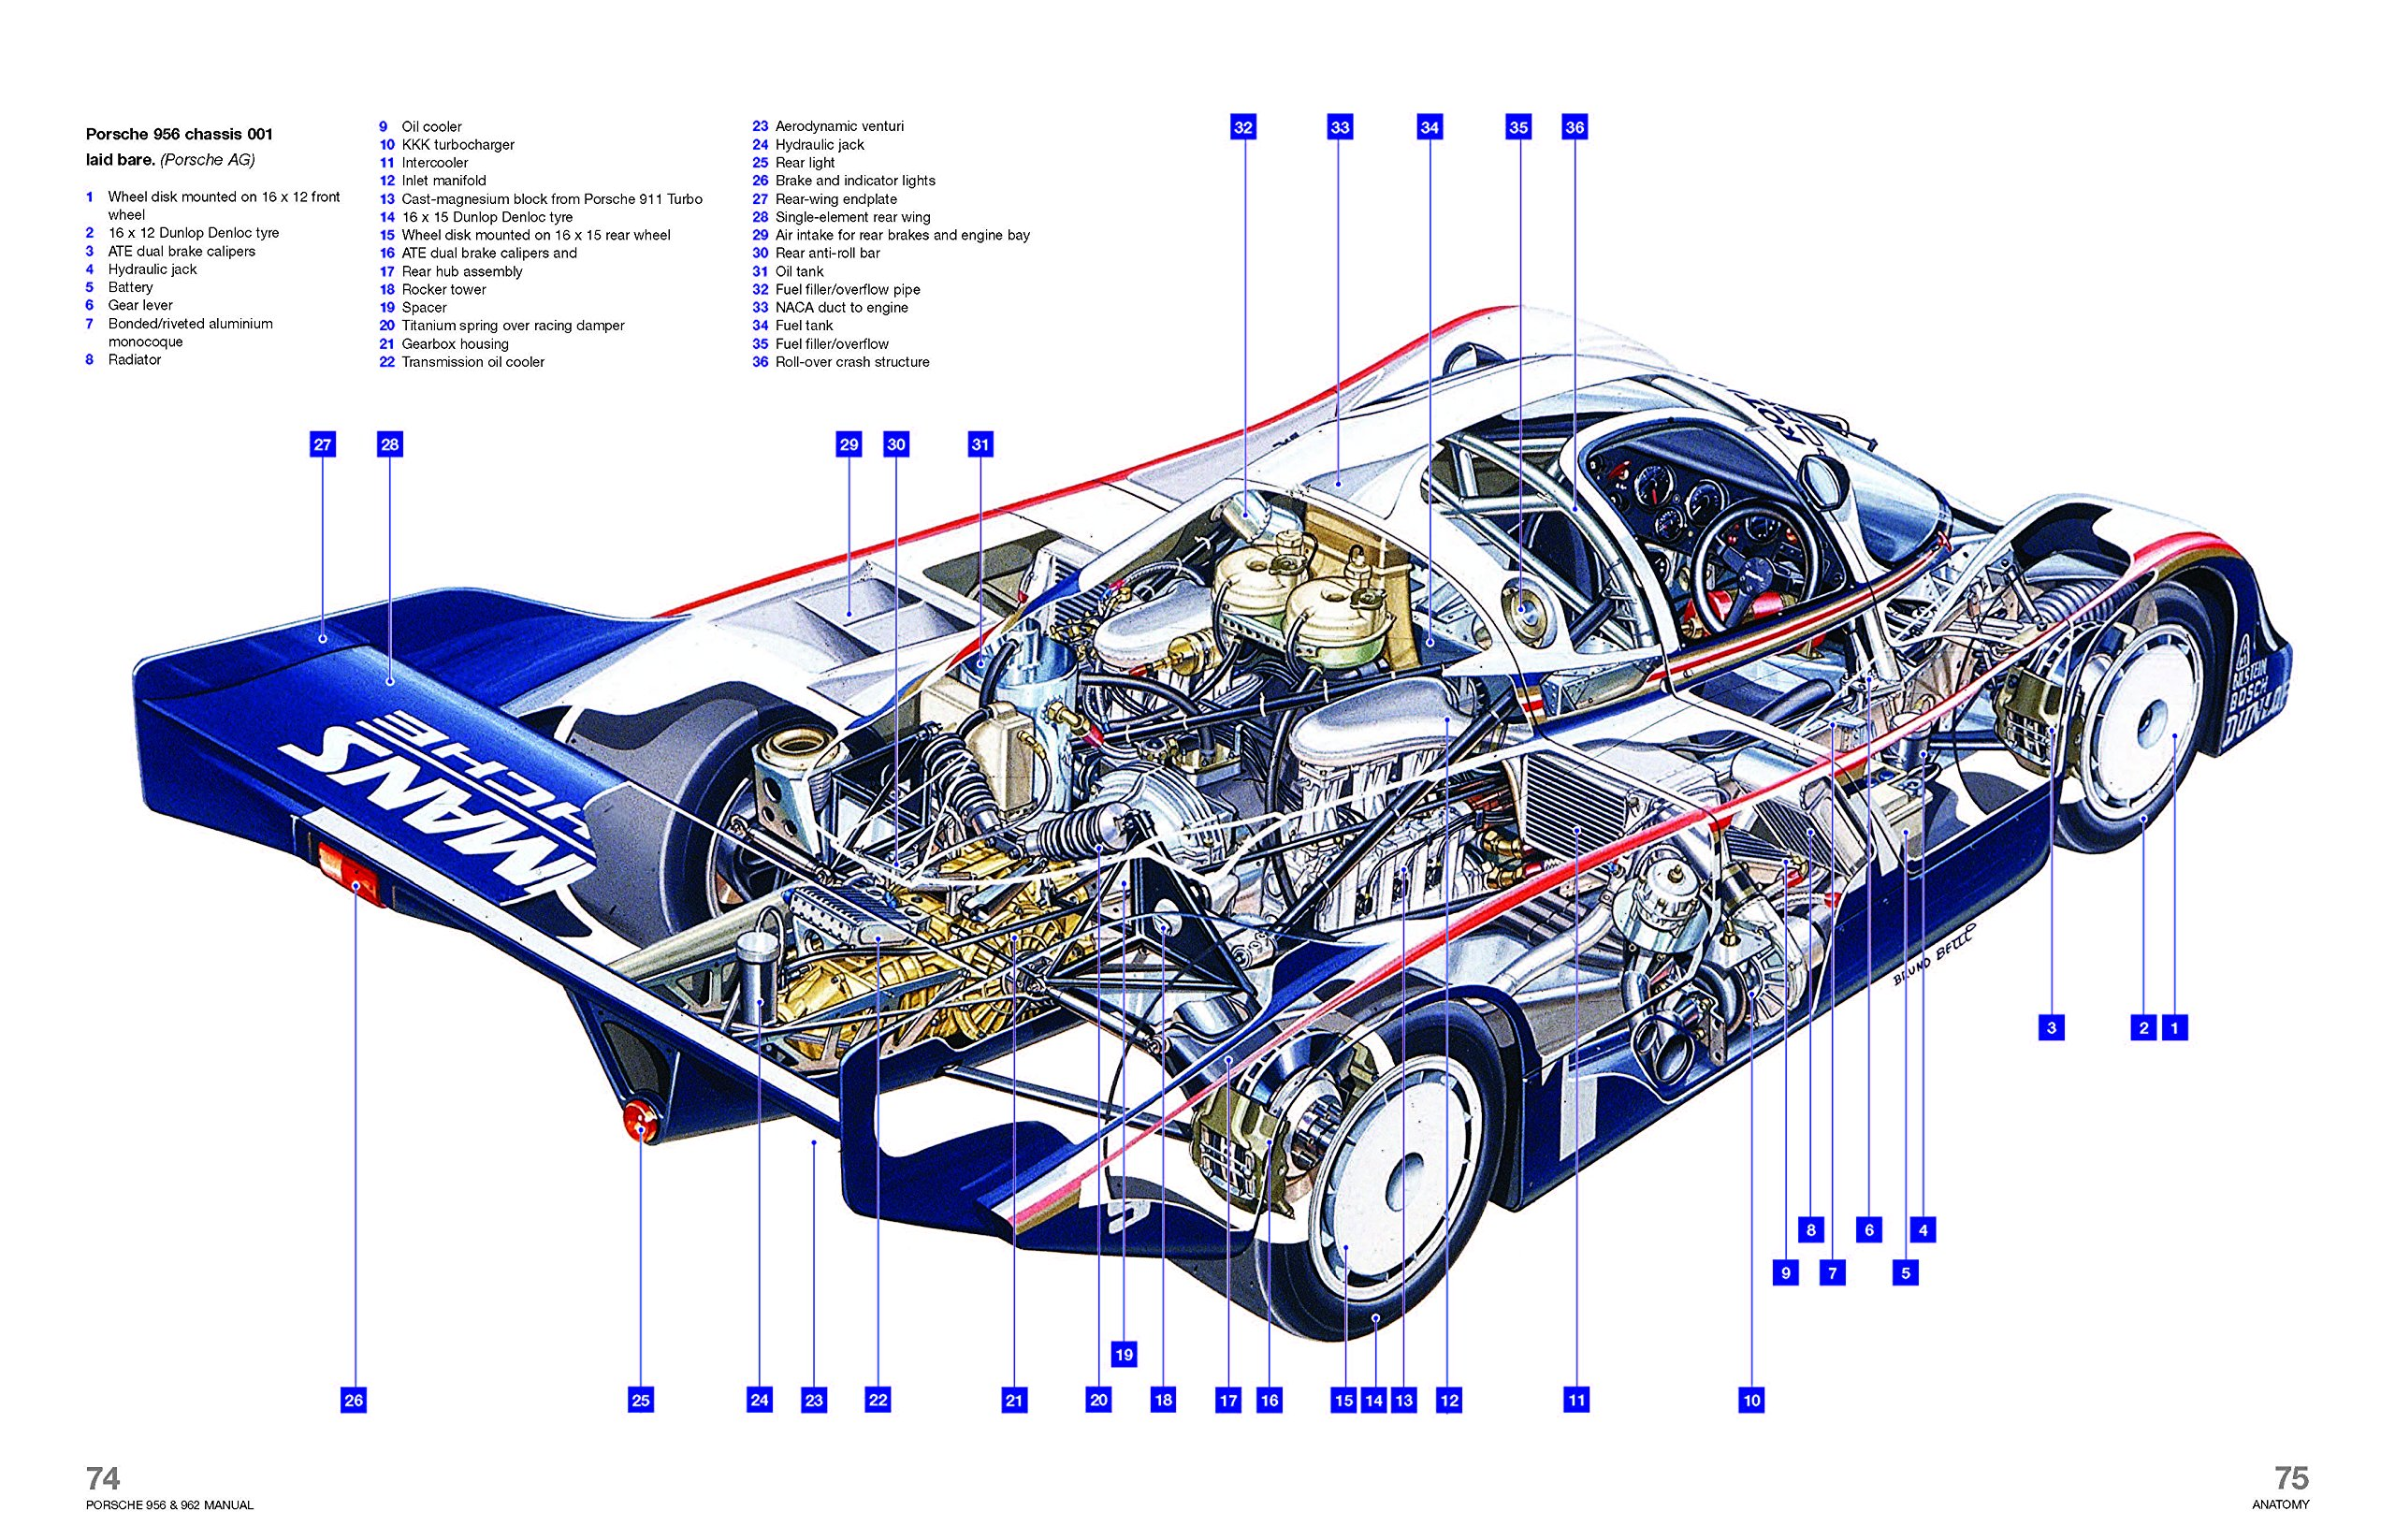 Haynes Introduces New Porsche 956 962 Owner S Workshop